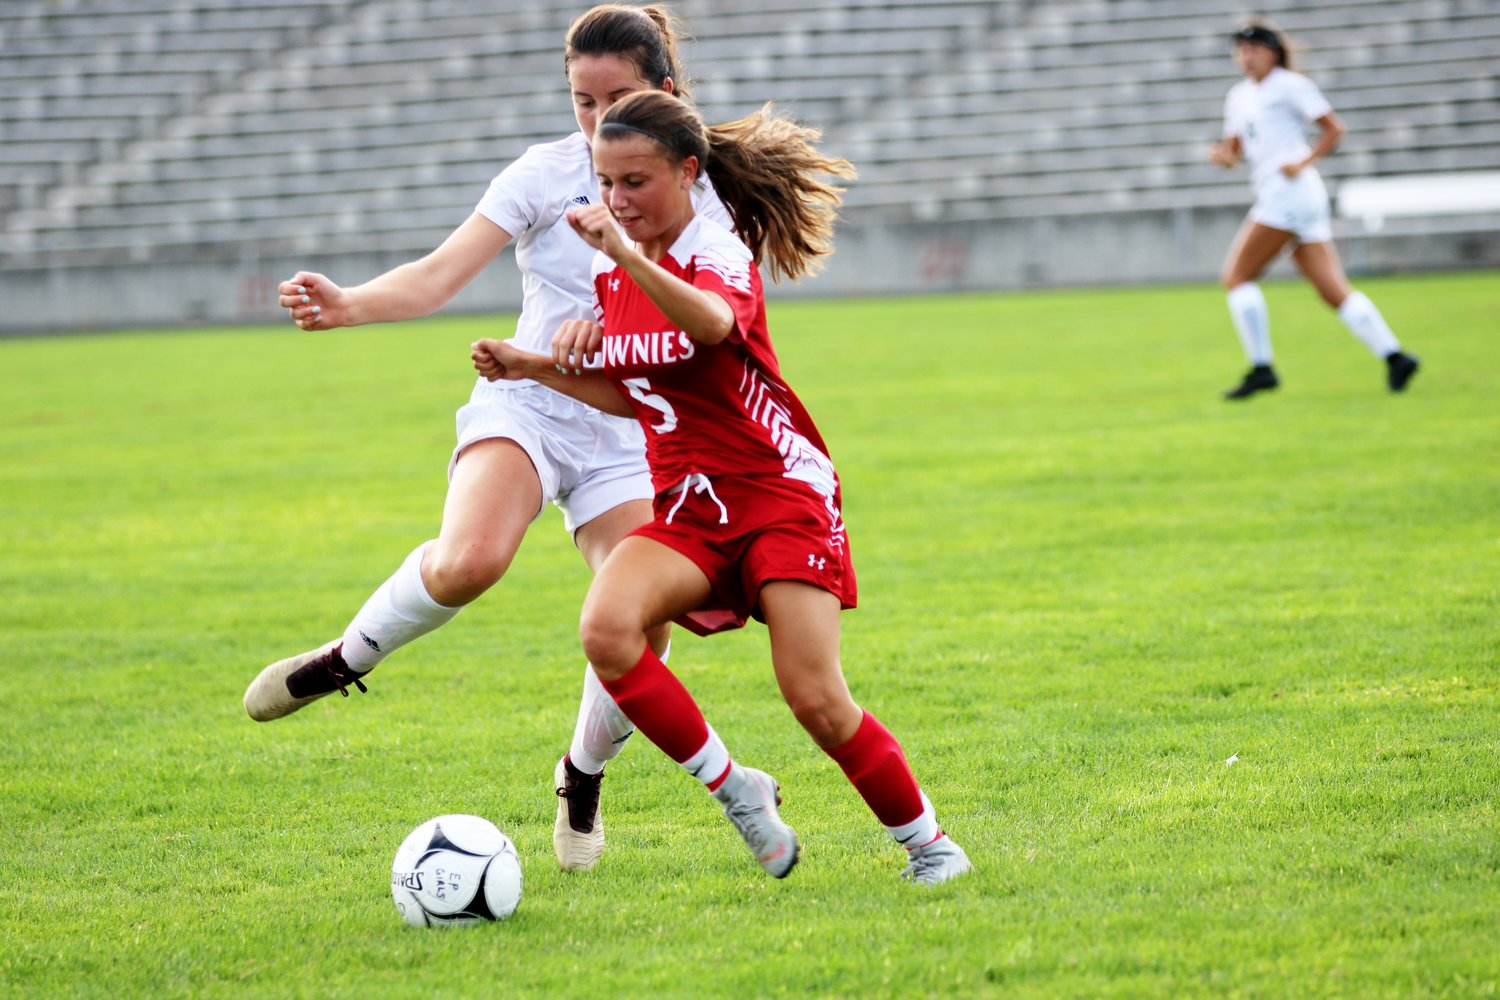 Tessa LaRoche of the Townie soccer team vs Classical.